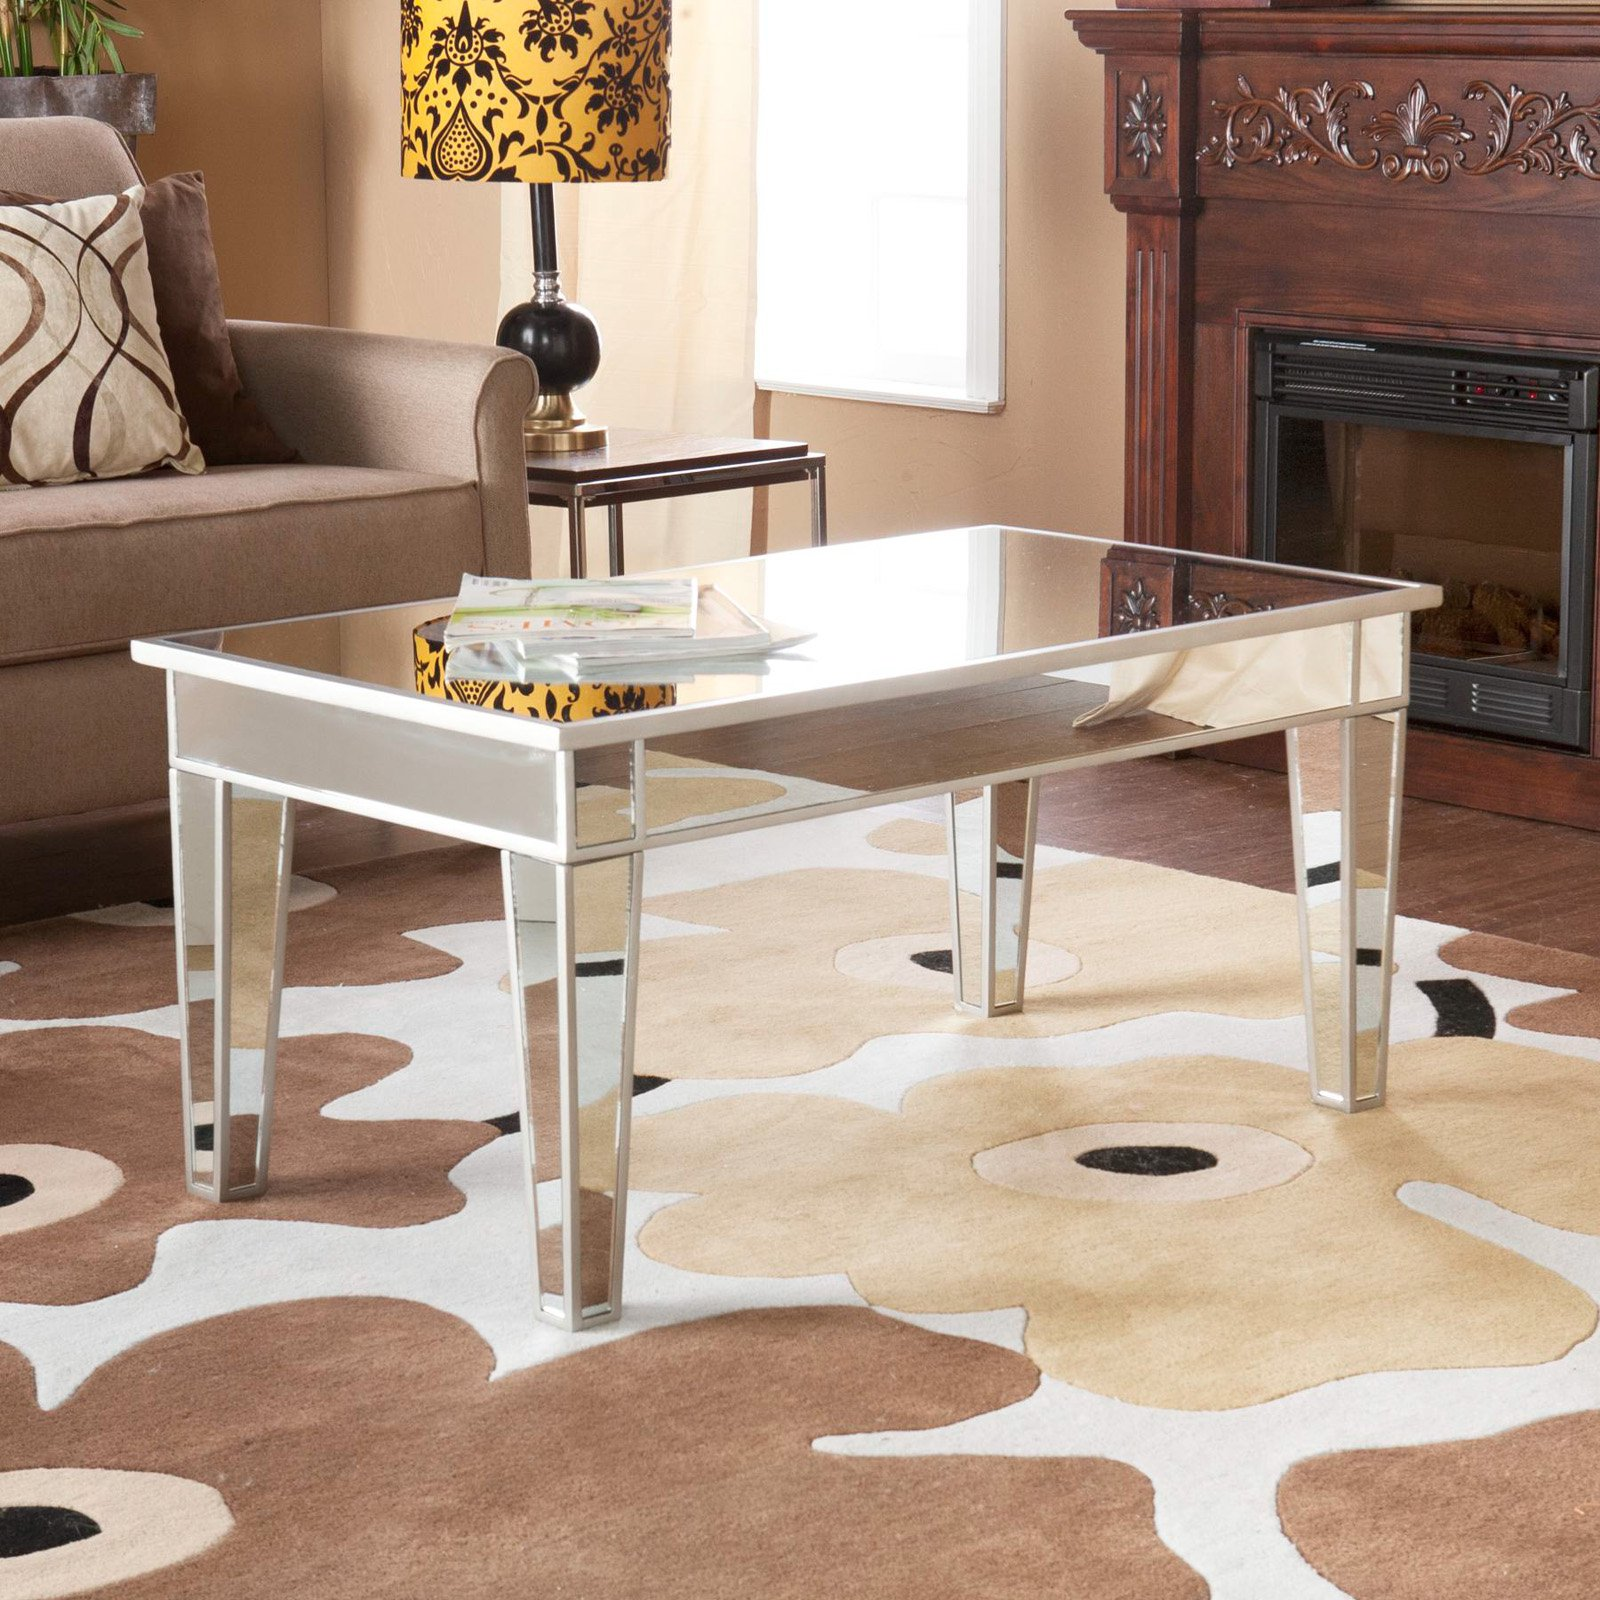 furniture accessories unique modern mirrored glass accent table stylish living room design with small brown contemporary sofa and floral synthetic rugs area also rectangular white